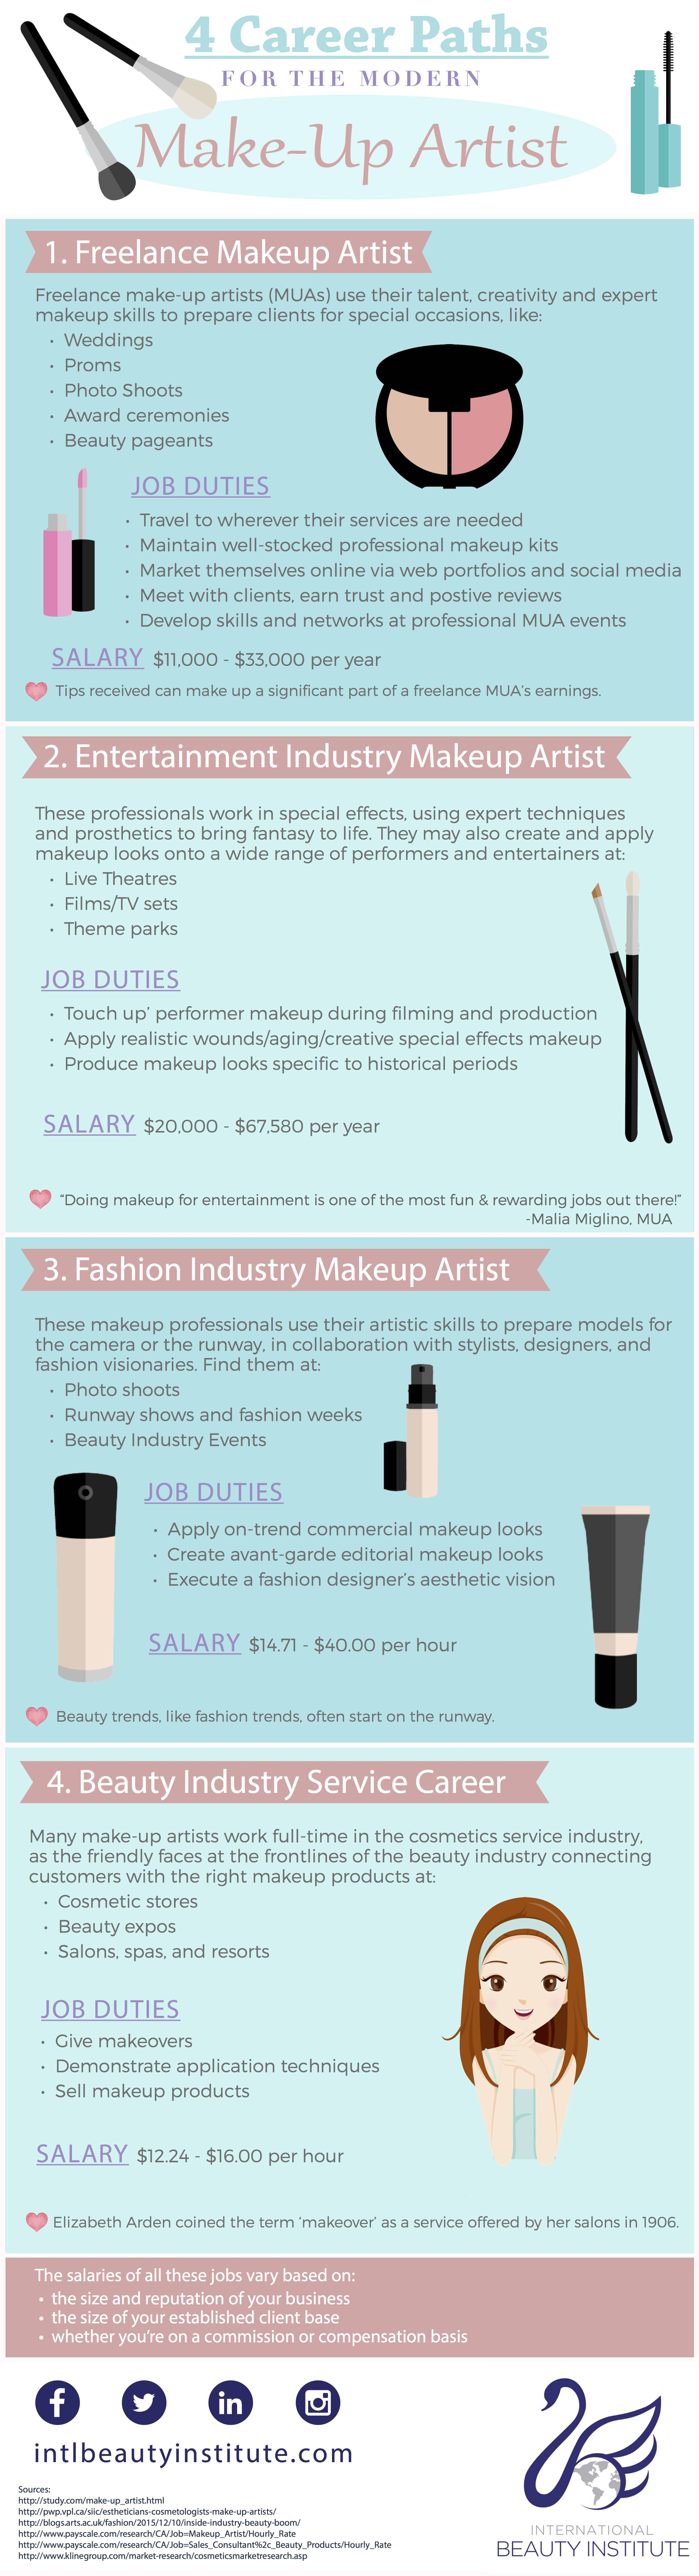 Infographic 4 Career Paths For The